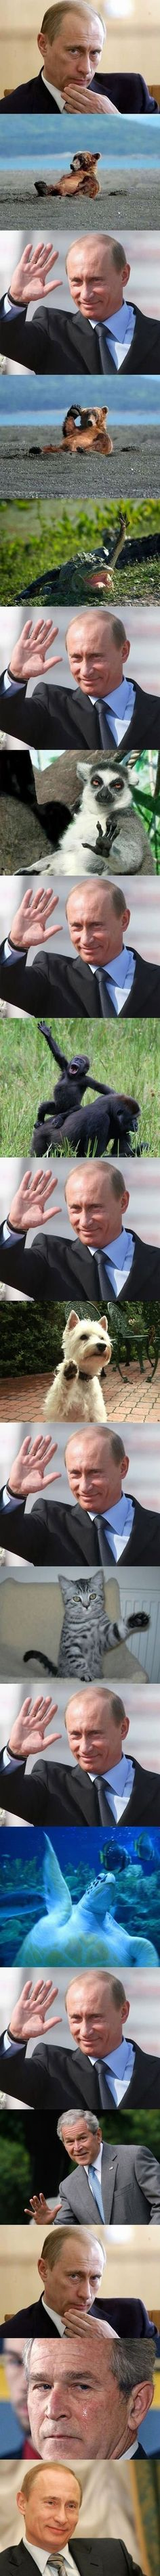 Friendly Putin this is really funny lol